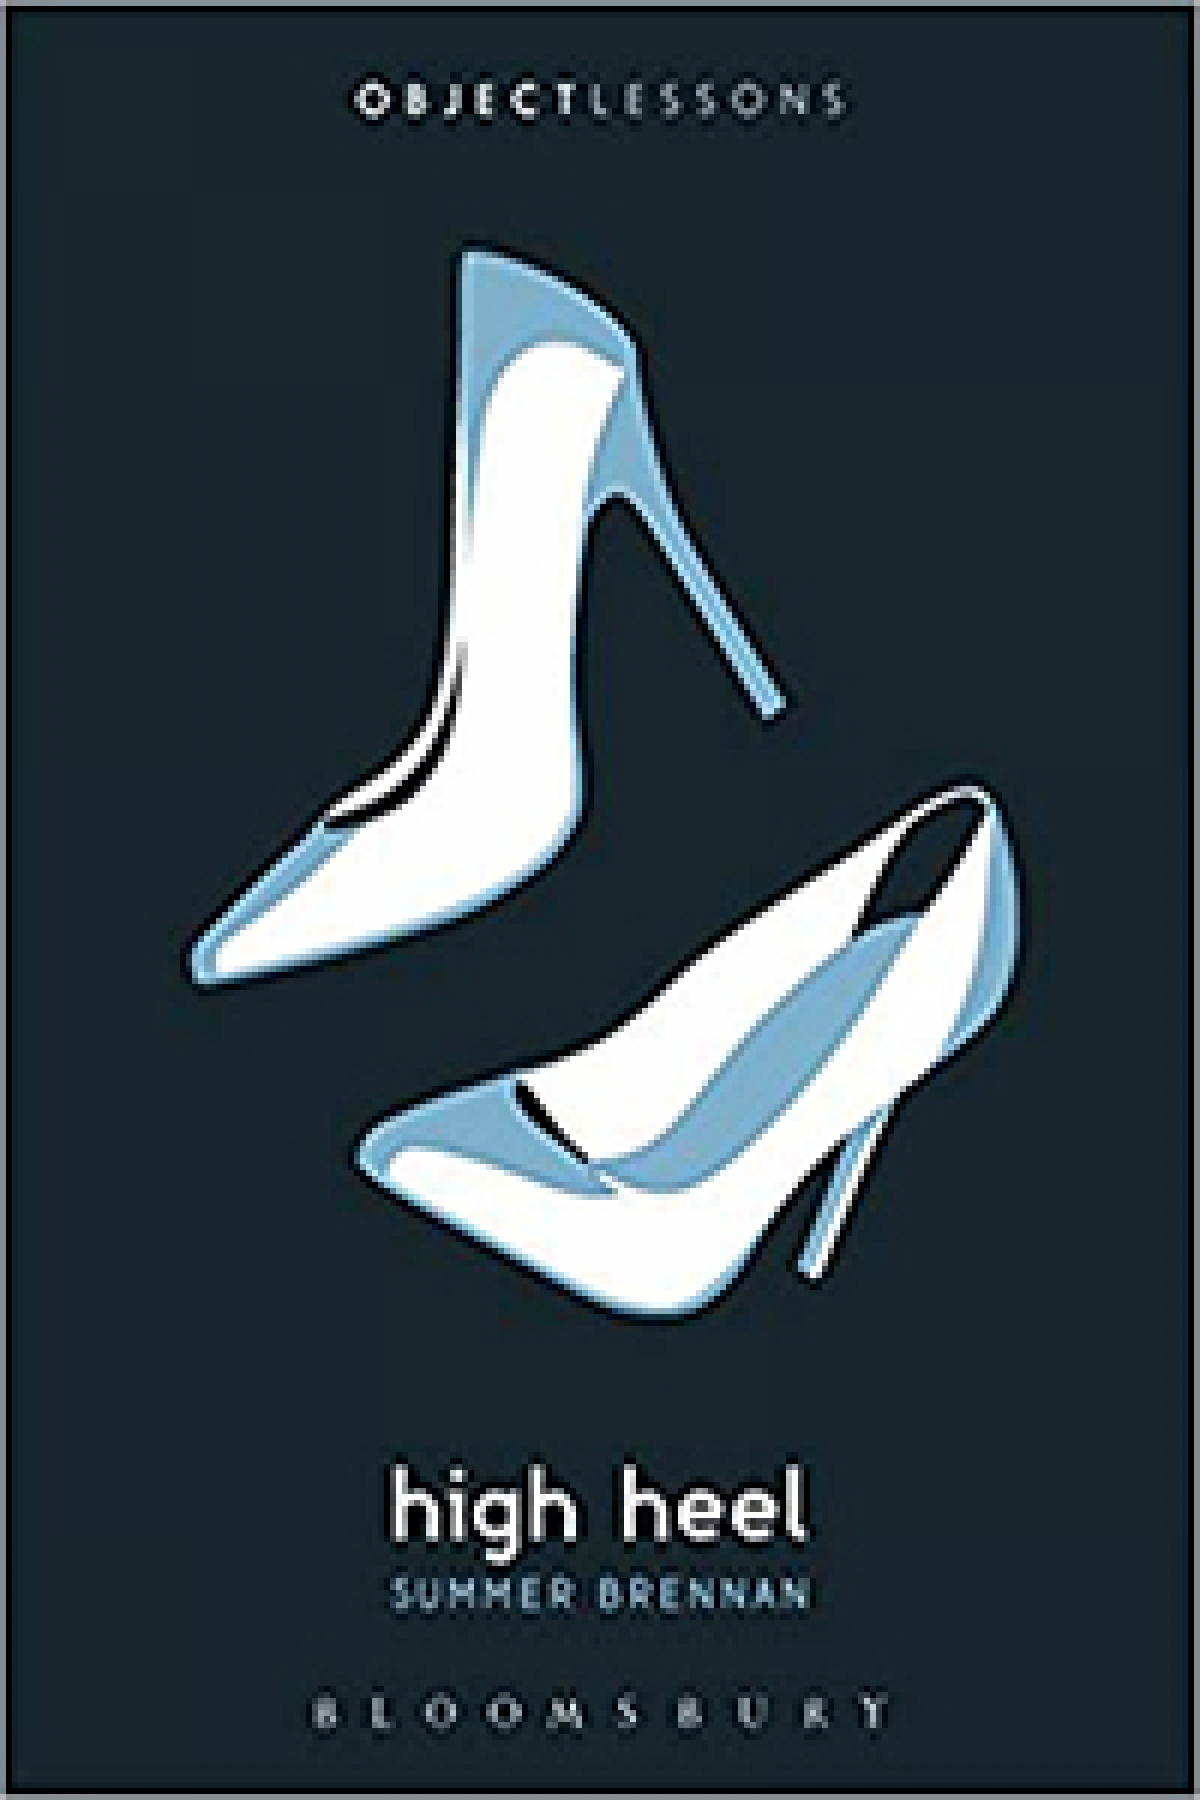 White high hill shoes on a book cover